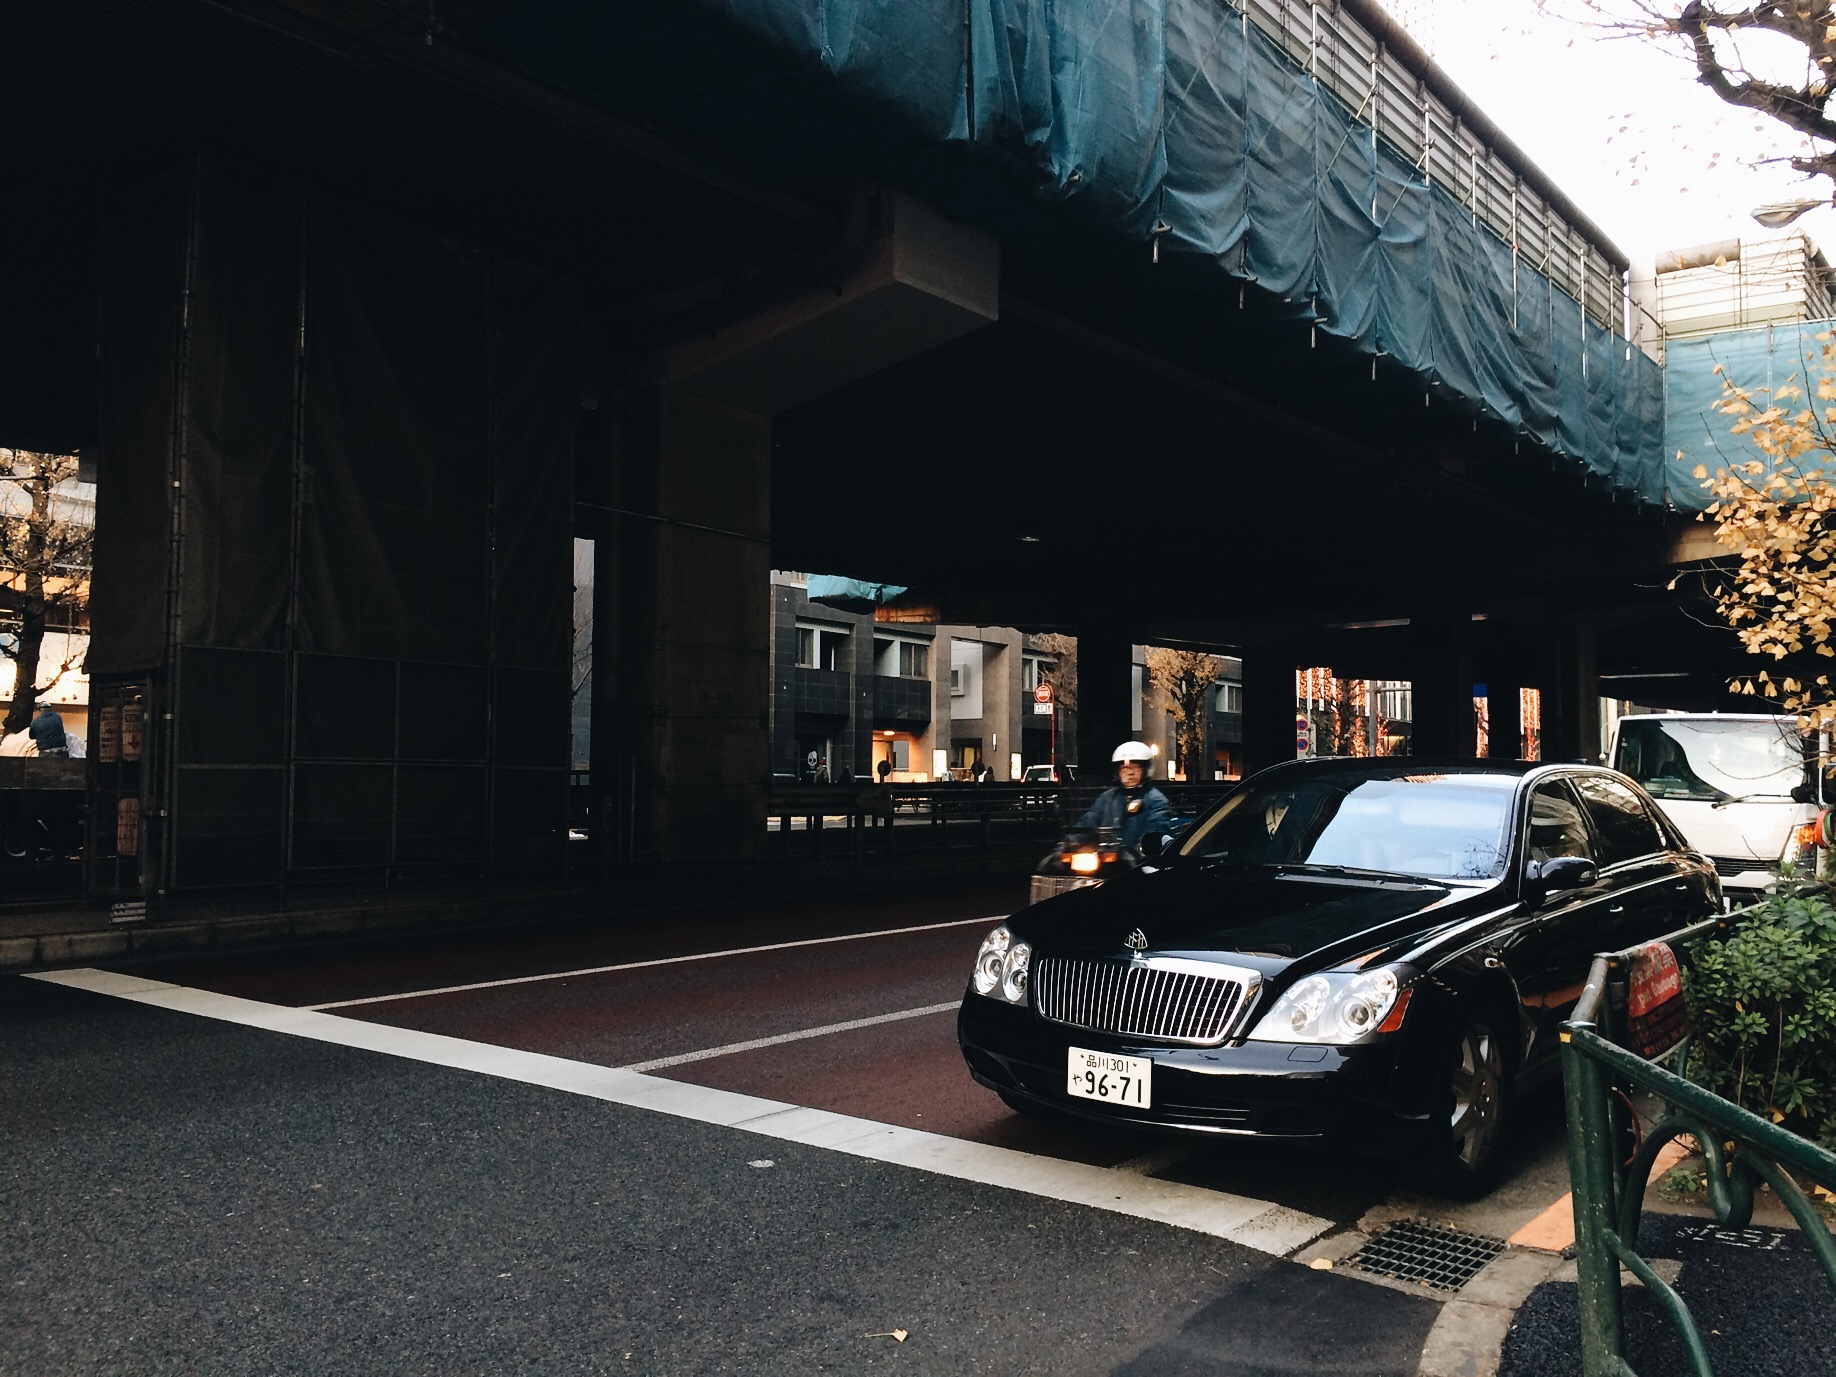 Roppongi had a lot of exotic cars.